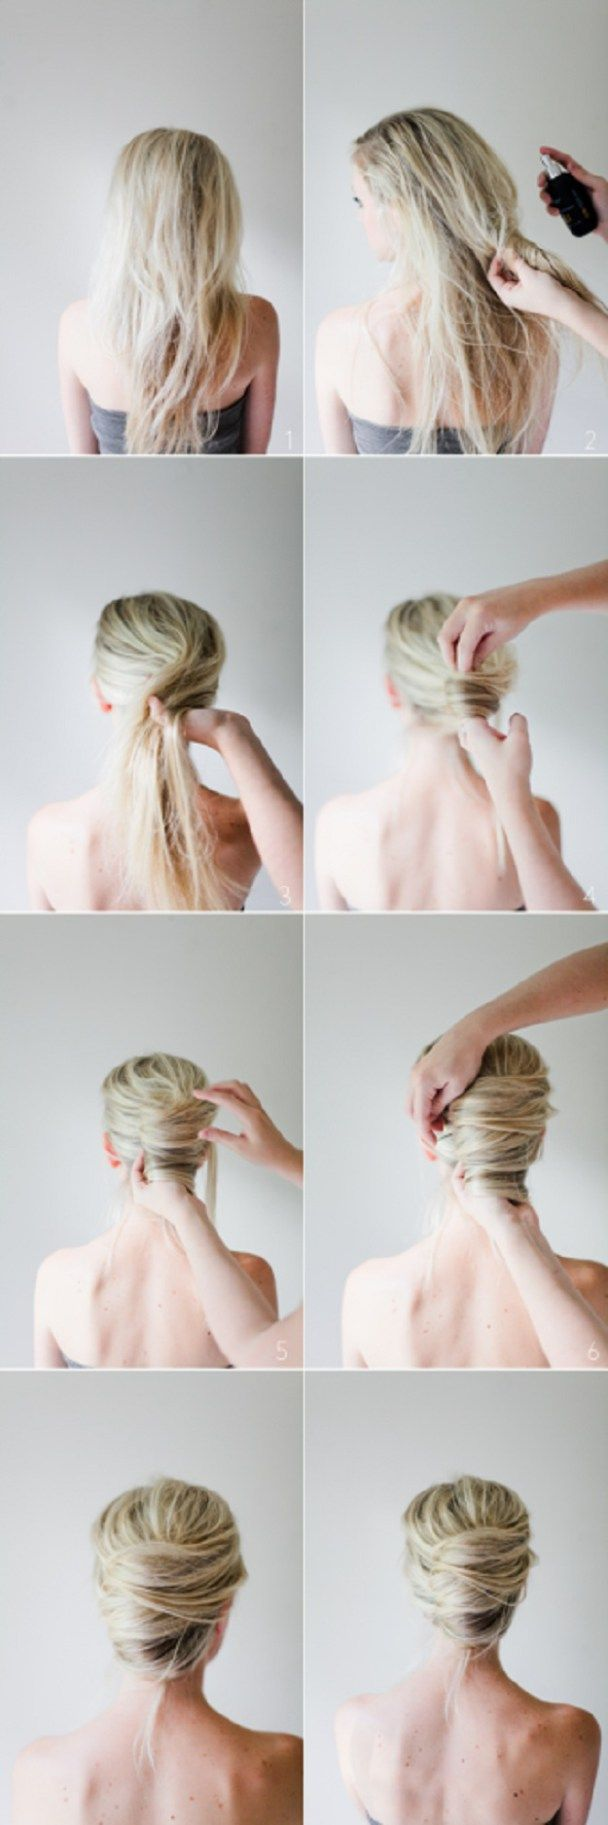 easy minutes hairstyles for women daily hairstyles easy and